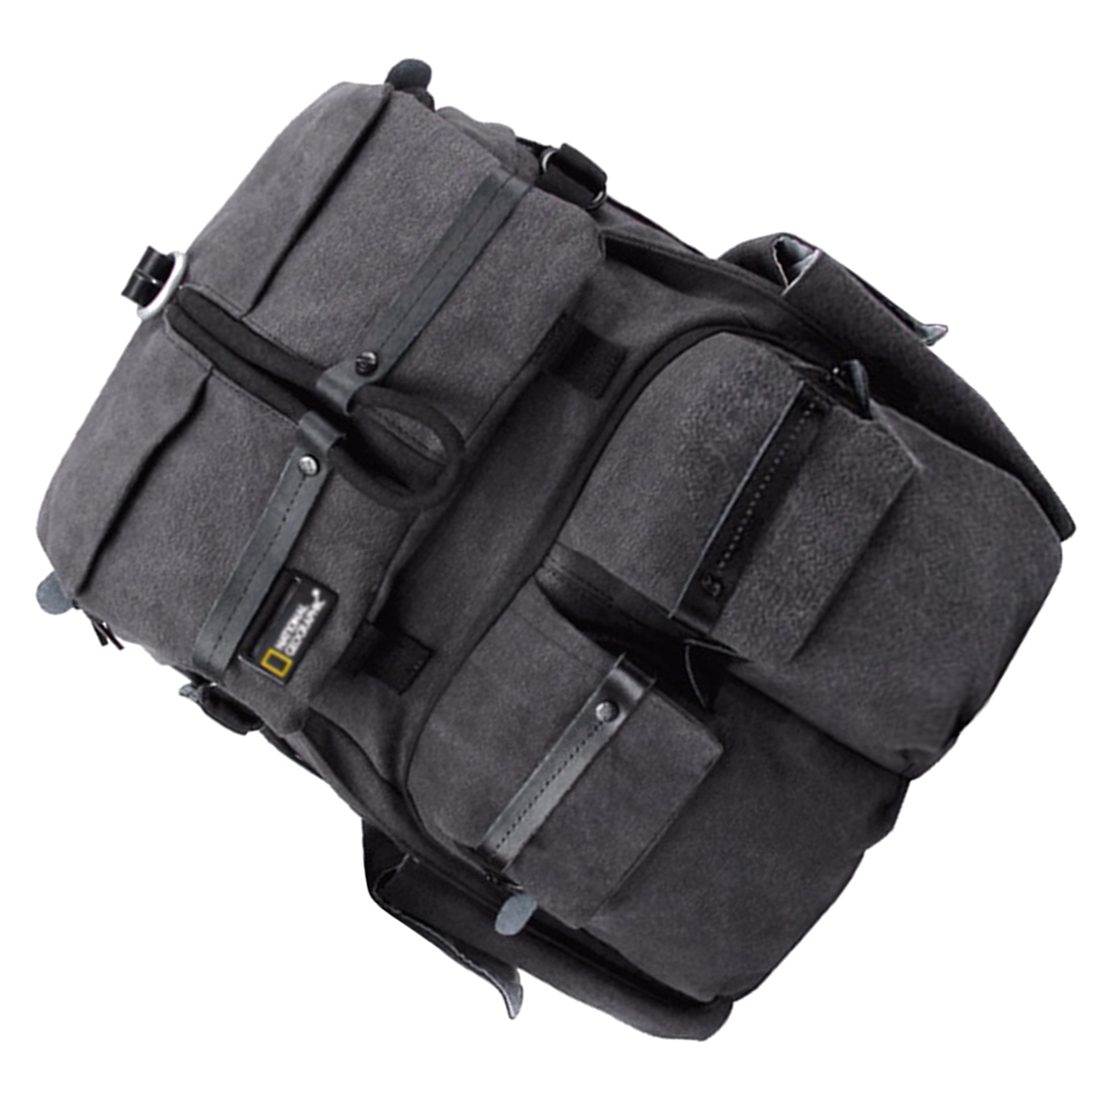 Consumer Electronics Accessories & Parts Top High Quality Camera Bag National Geographic Ng W5070 Camera Backpack Genuine Outdoor Travel Camera Bag extra Thick Version